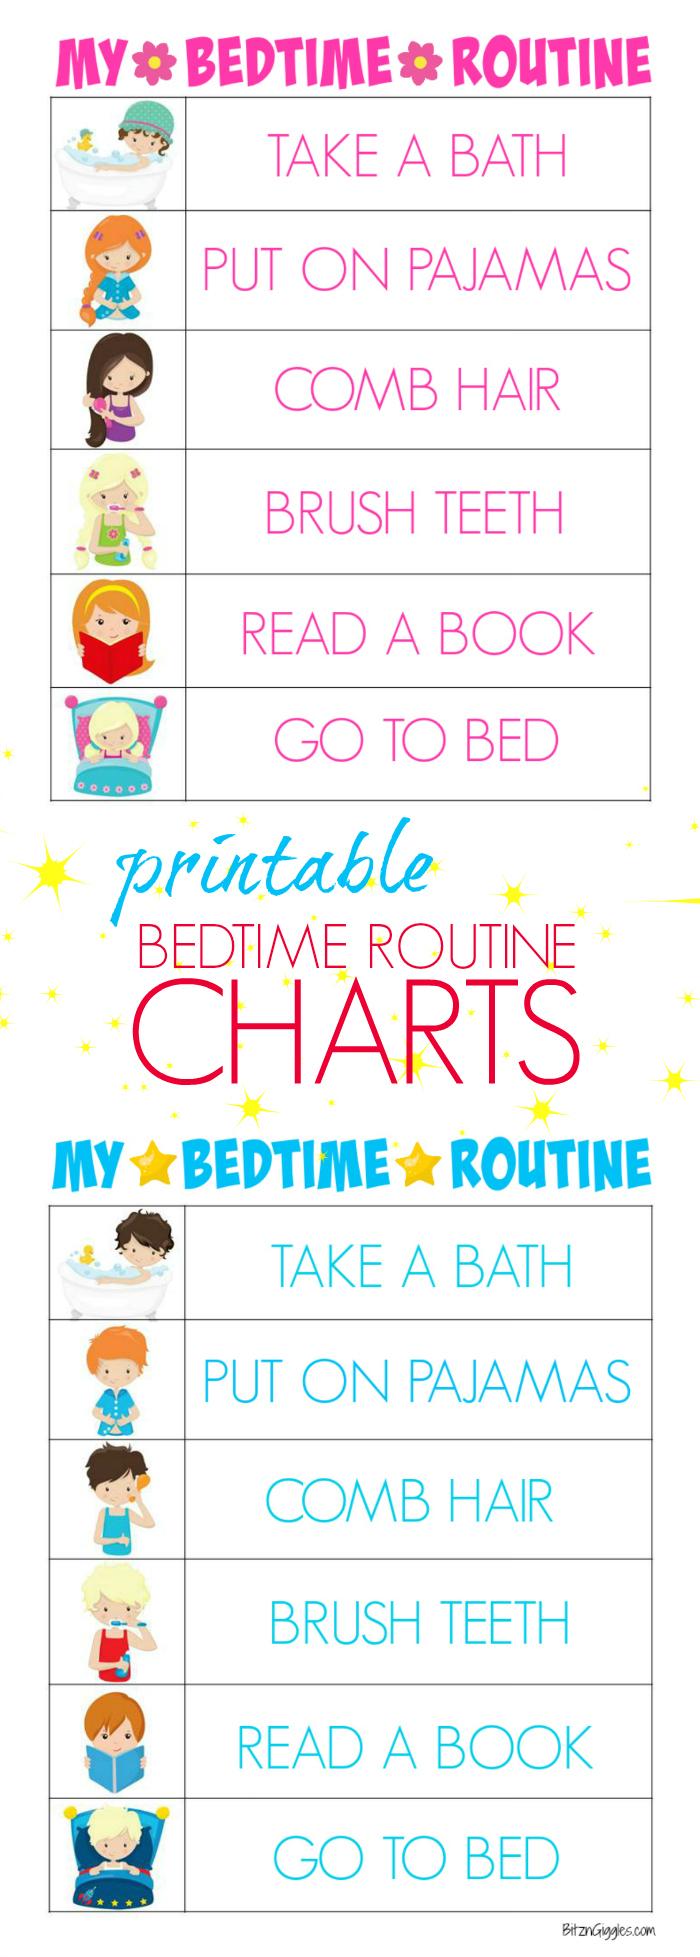 picture regarding Printable Workouts Routines called Printable Bedtime Agenda Charts - Bitz Giggles